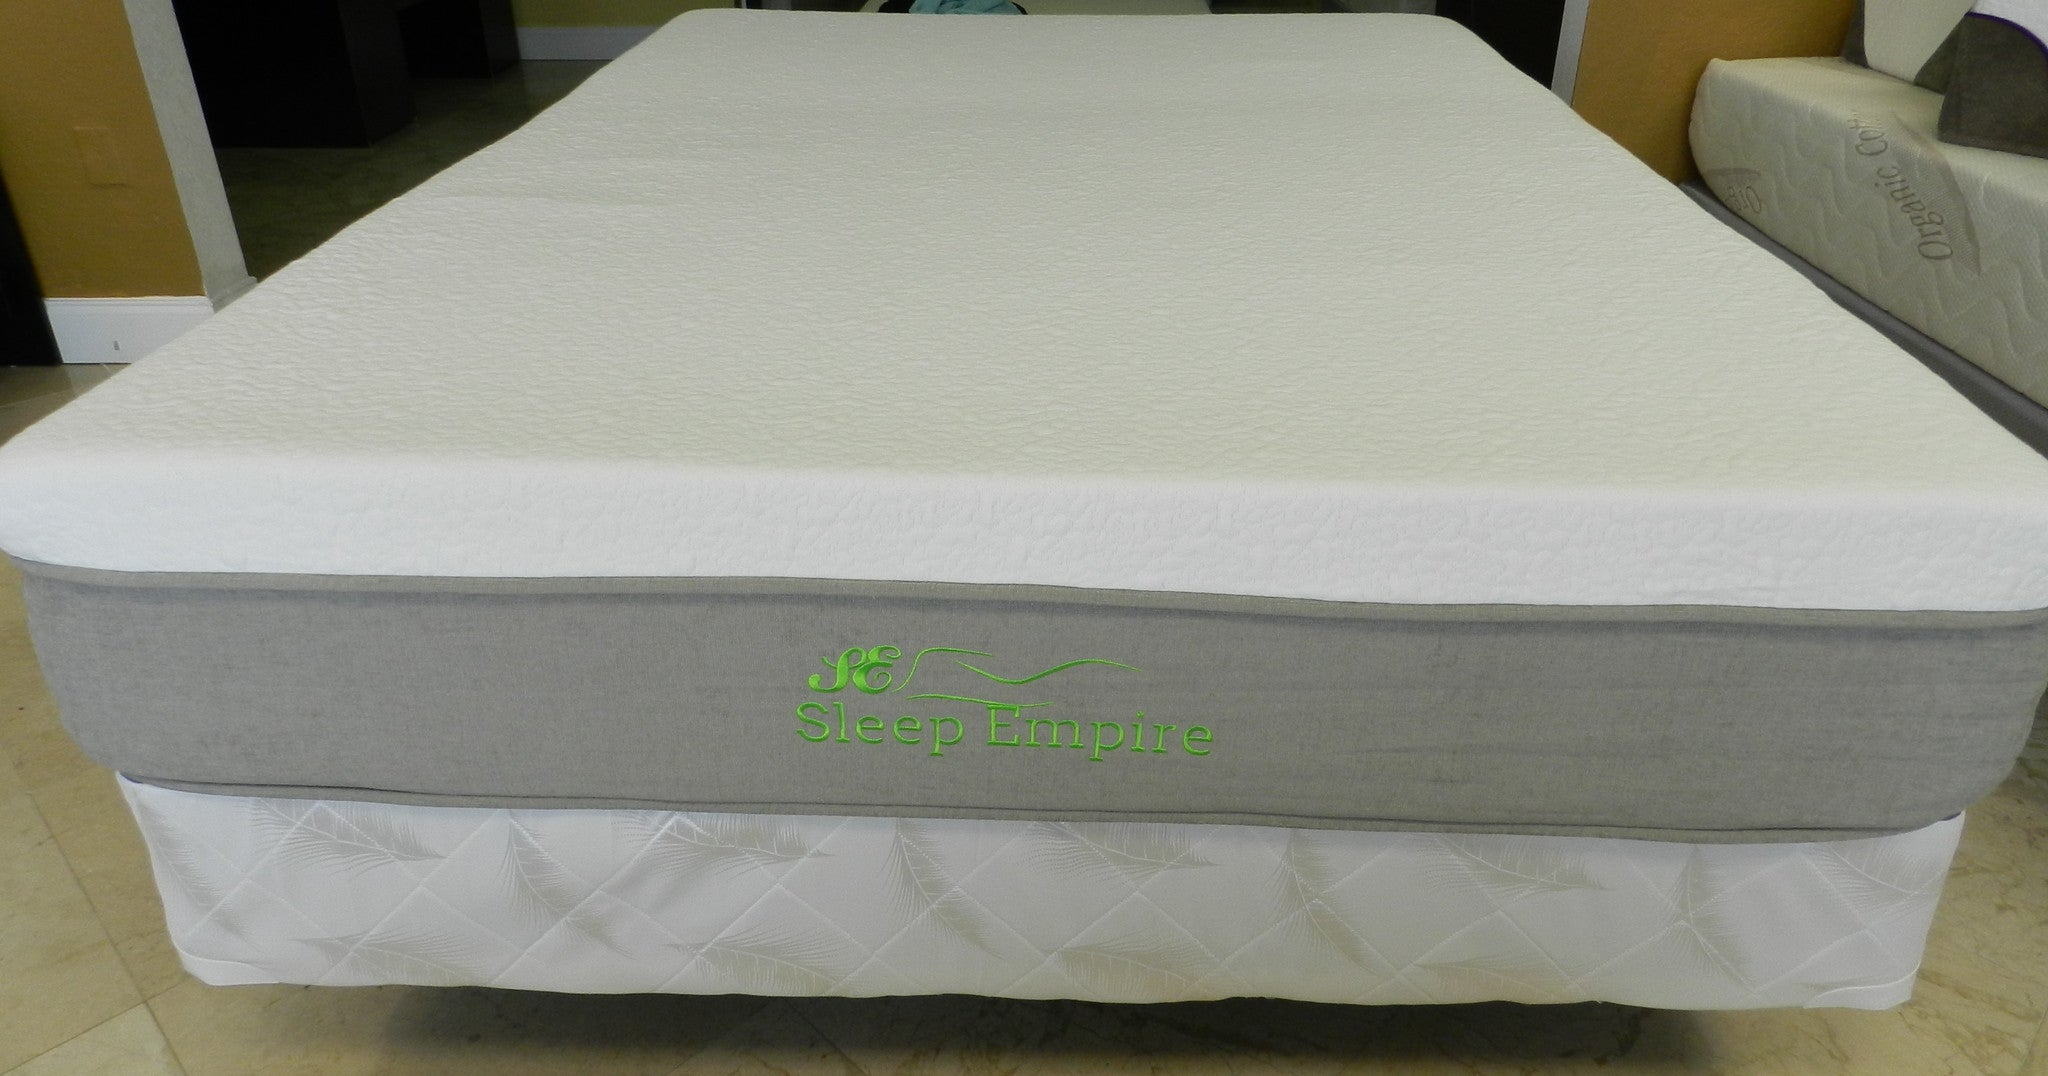 memory sprung mattress dr insp beds amp pocket inspirations deluxe buy a mattresses foam dual